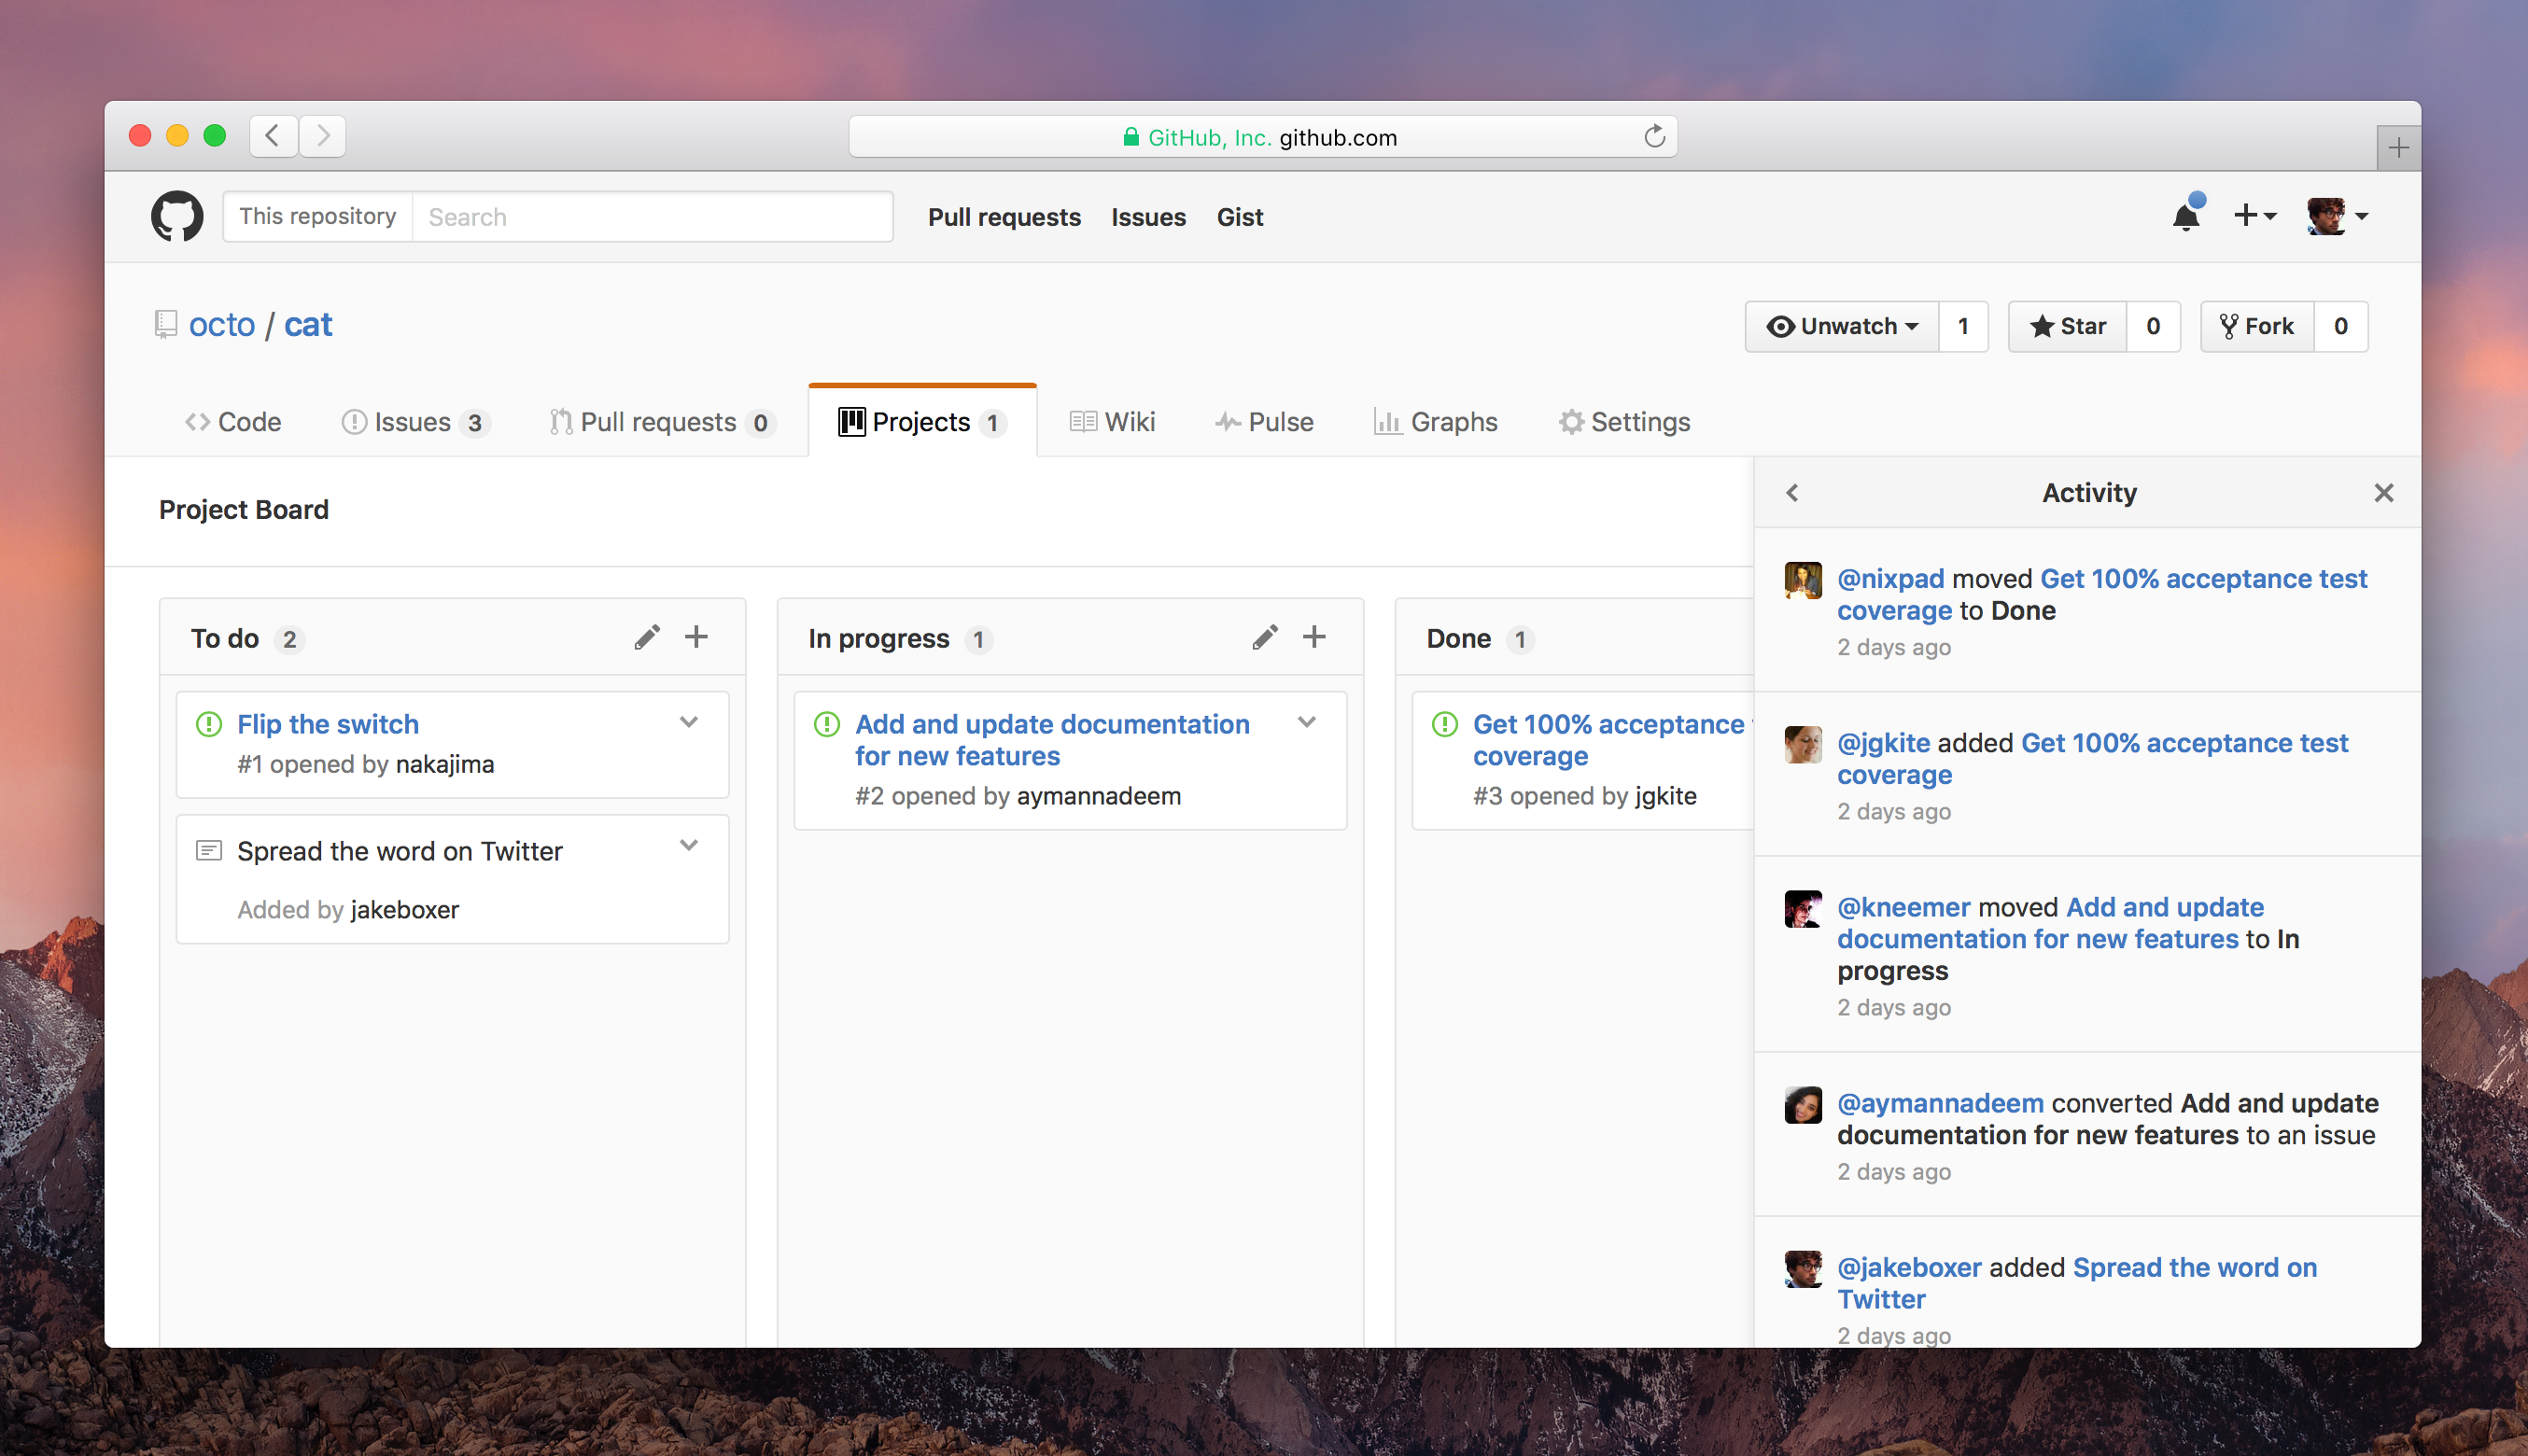 Screenshot of the Project Activity view